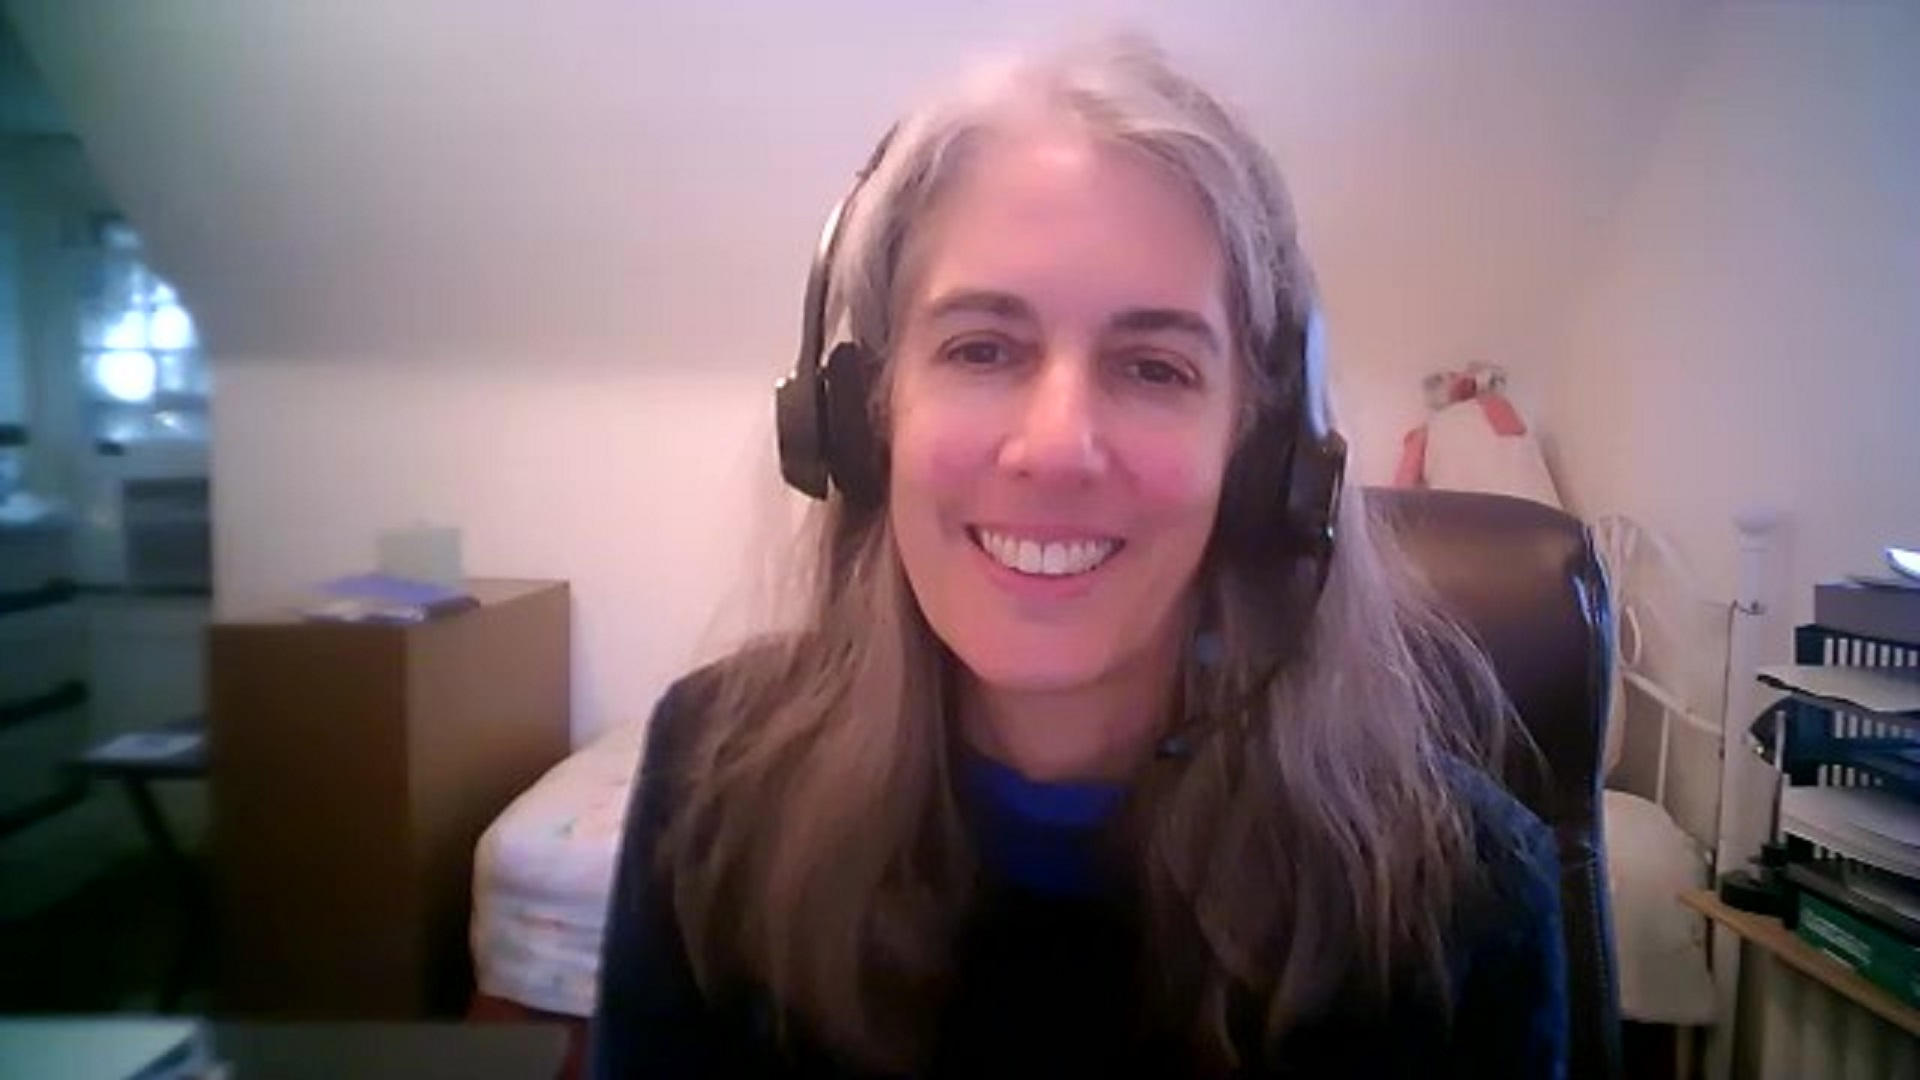 a screenshot from a video chat of a White woman smiling wearing a headset